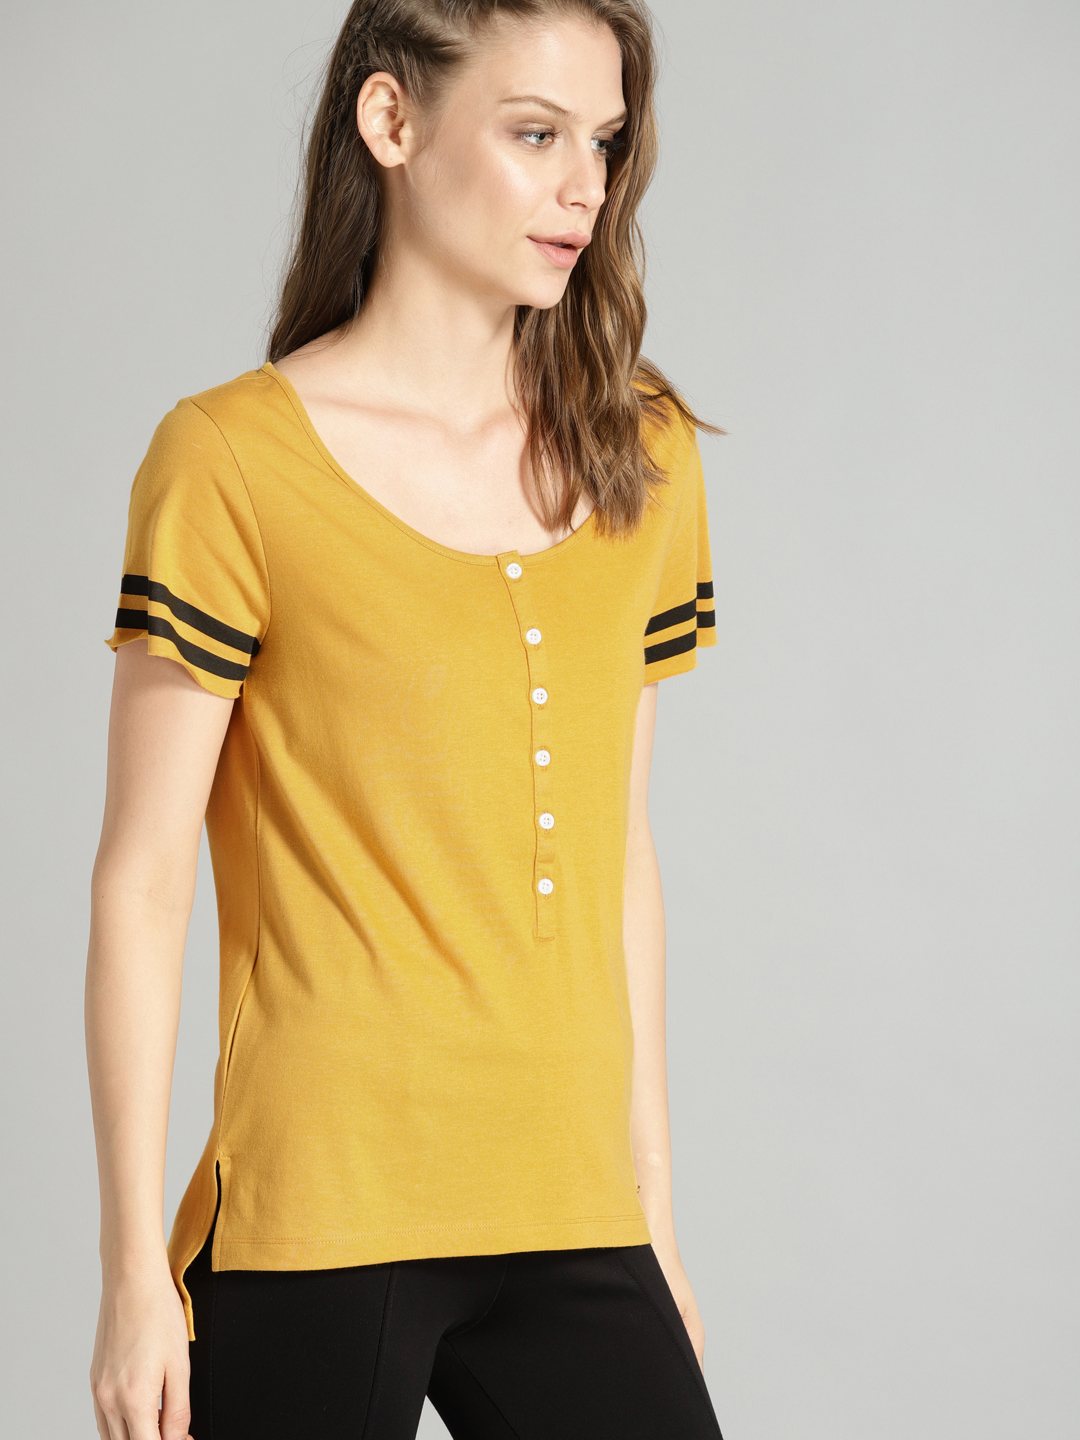 Roadster Women Mustard Yellow Solid T-shirt Price in India